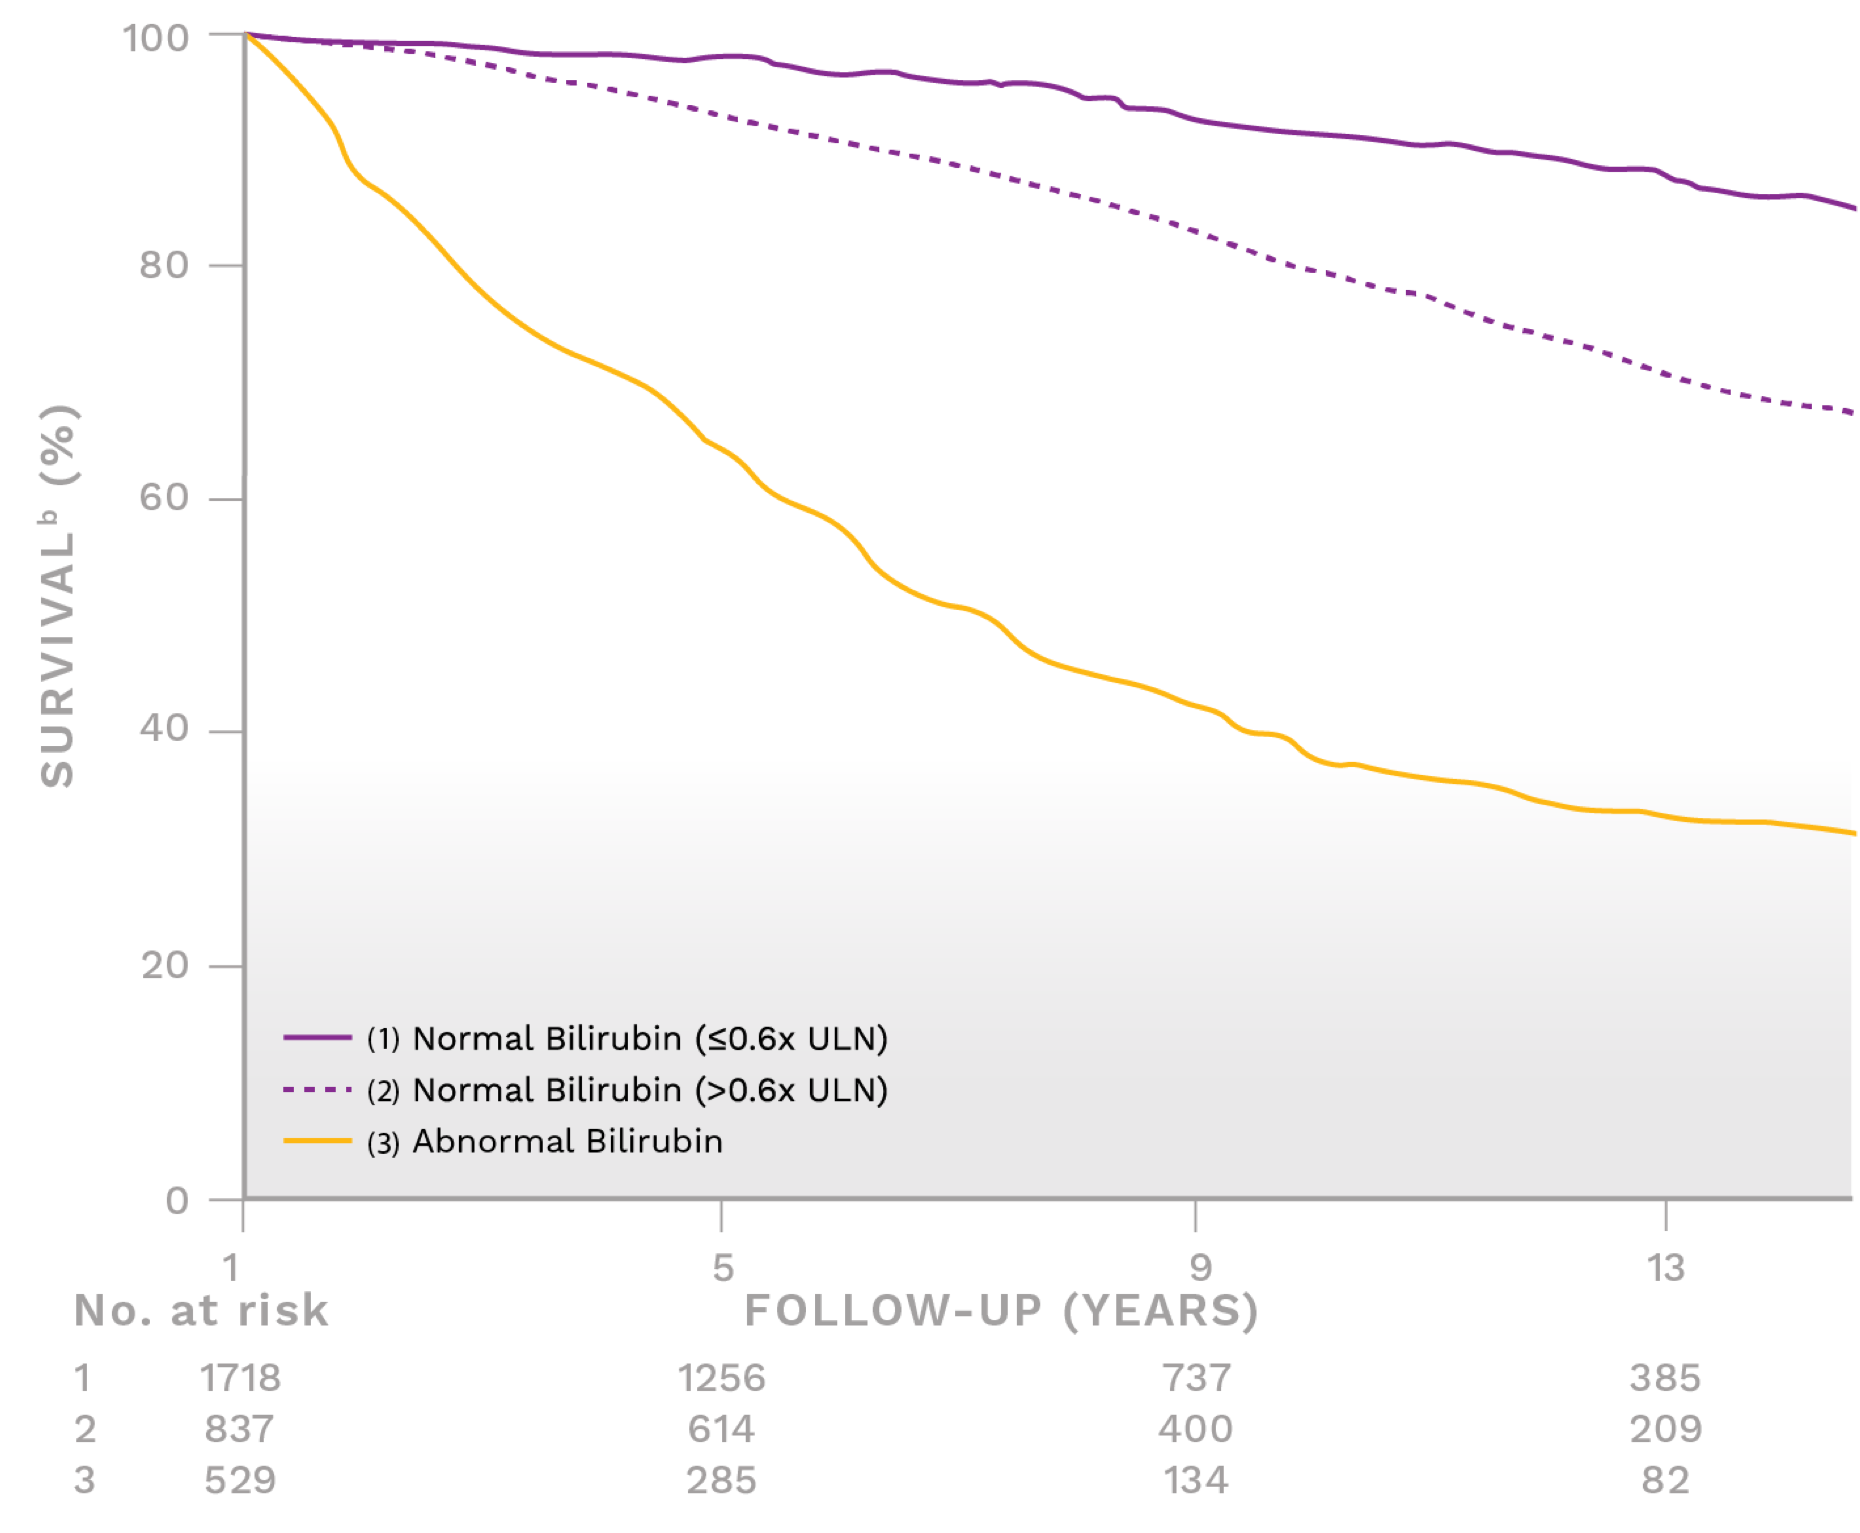 Graph showing survival rate for different levels of bilirubin